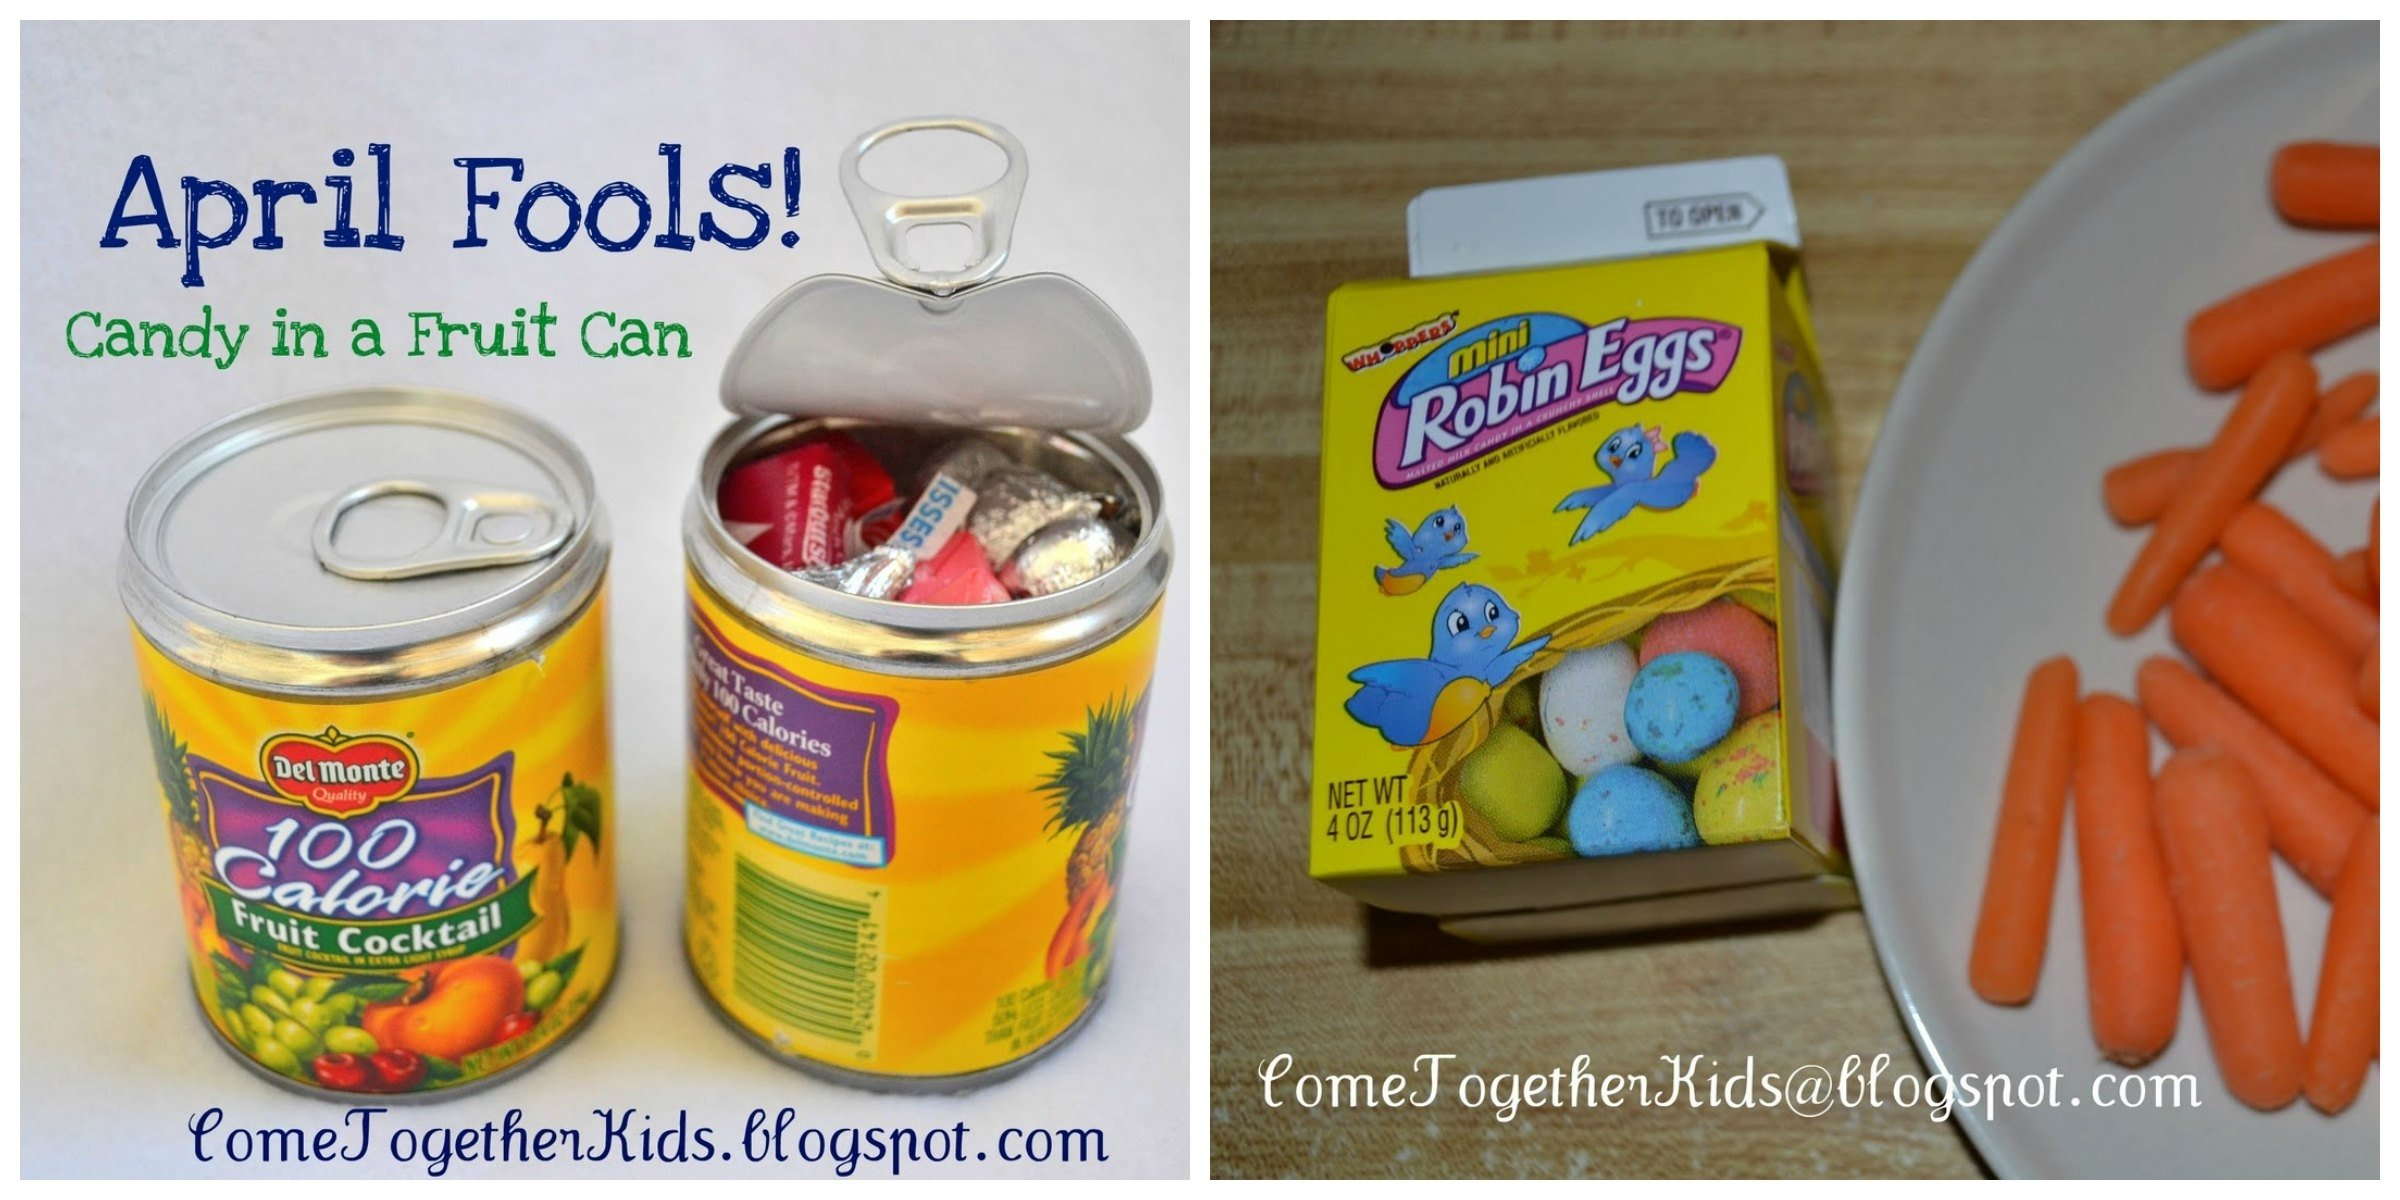 10 Wonderful April Fools Ideas For Kids harmless and fun april fools day pranks for kids skip to my lou 1 2020